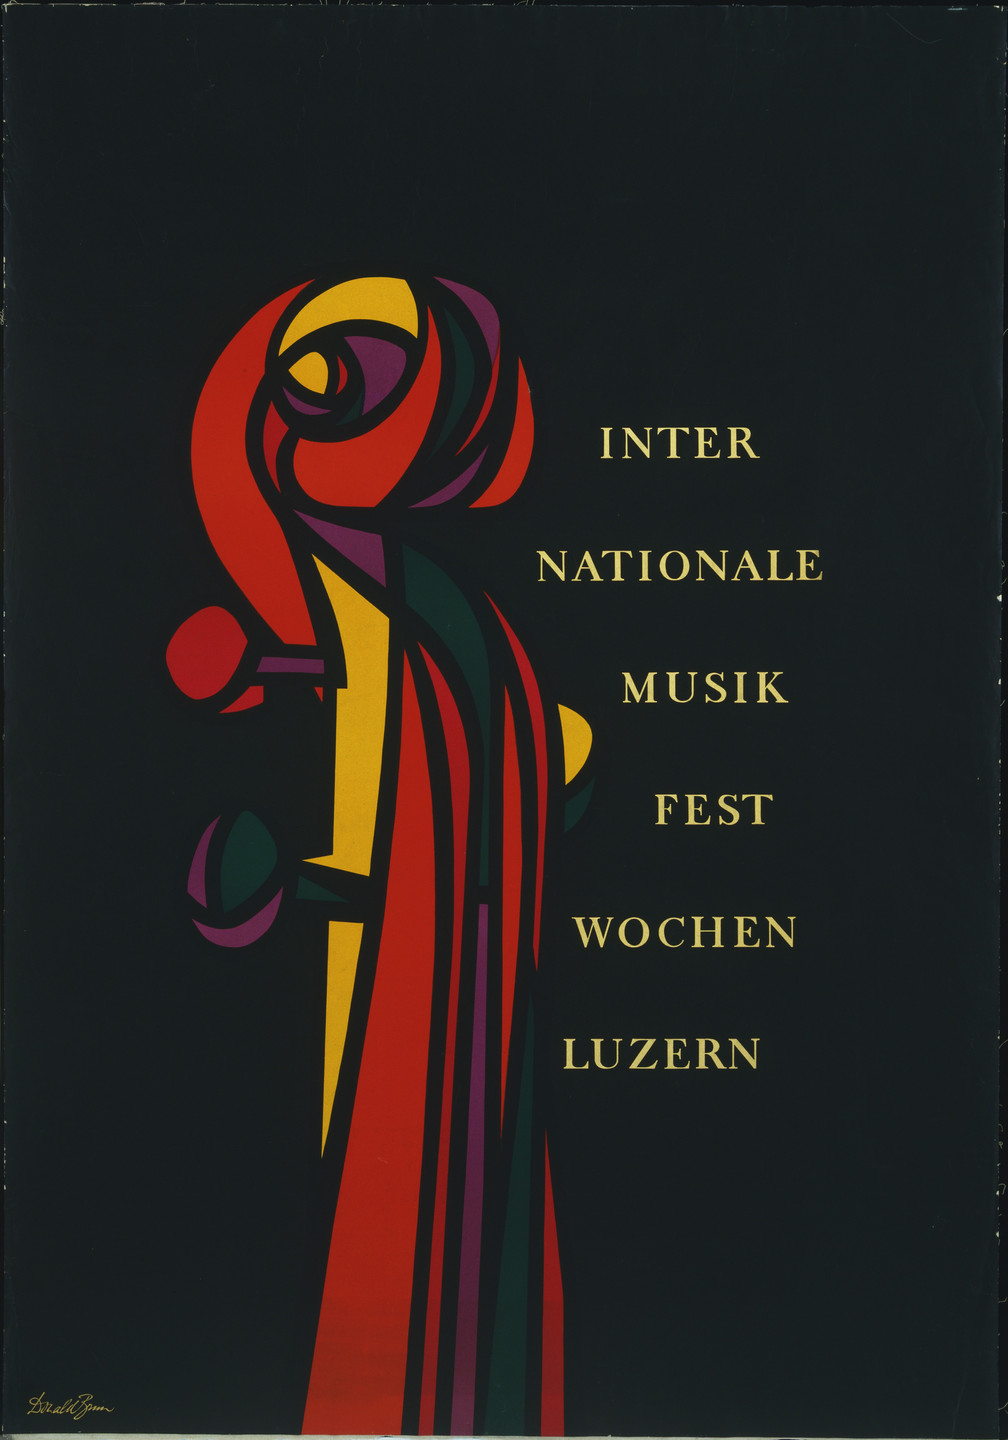 Donald Brun. Internationale Musikfestwochen, Luzern. 1950